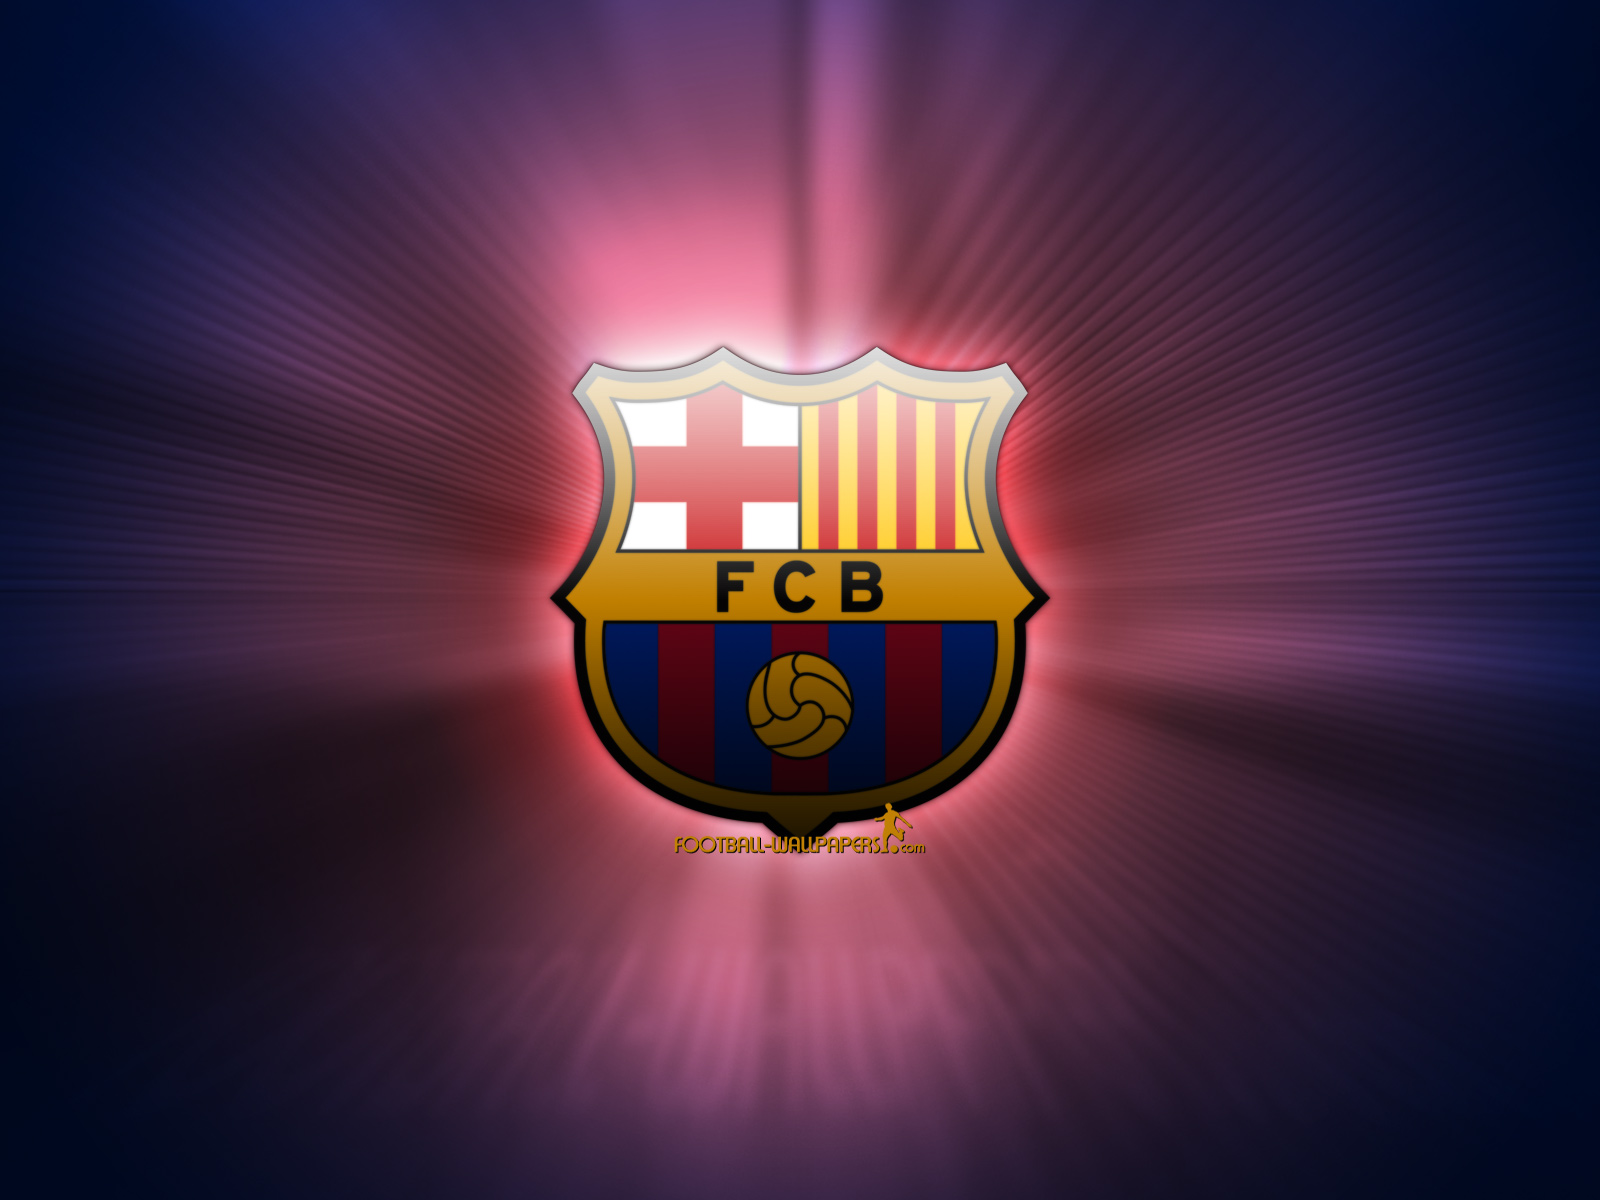 World Sports Hd Wallpapers FC Barcelona Hd Wallpapers 1600x1200